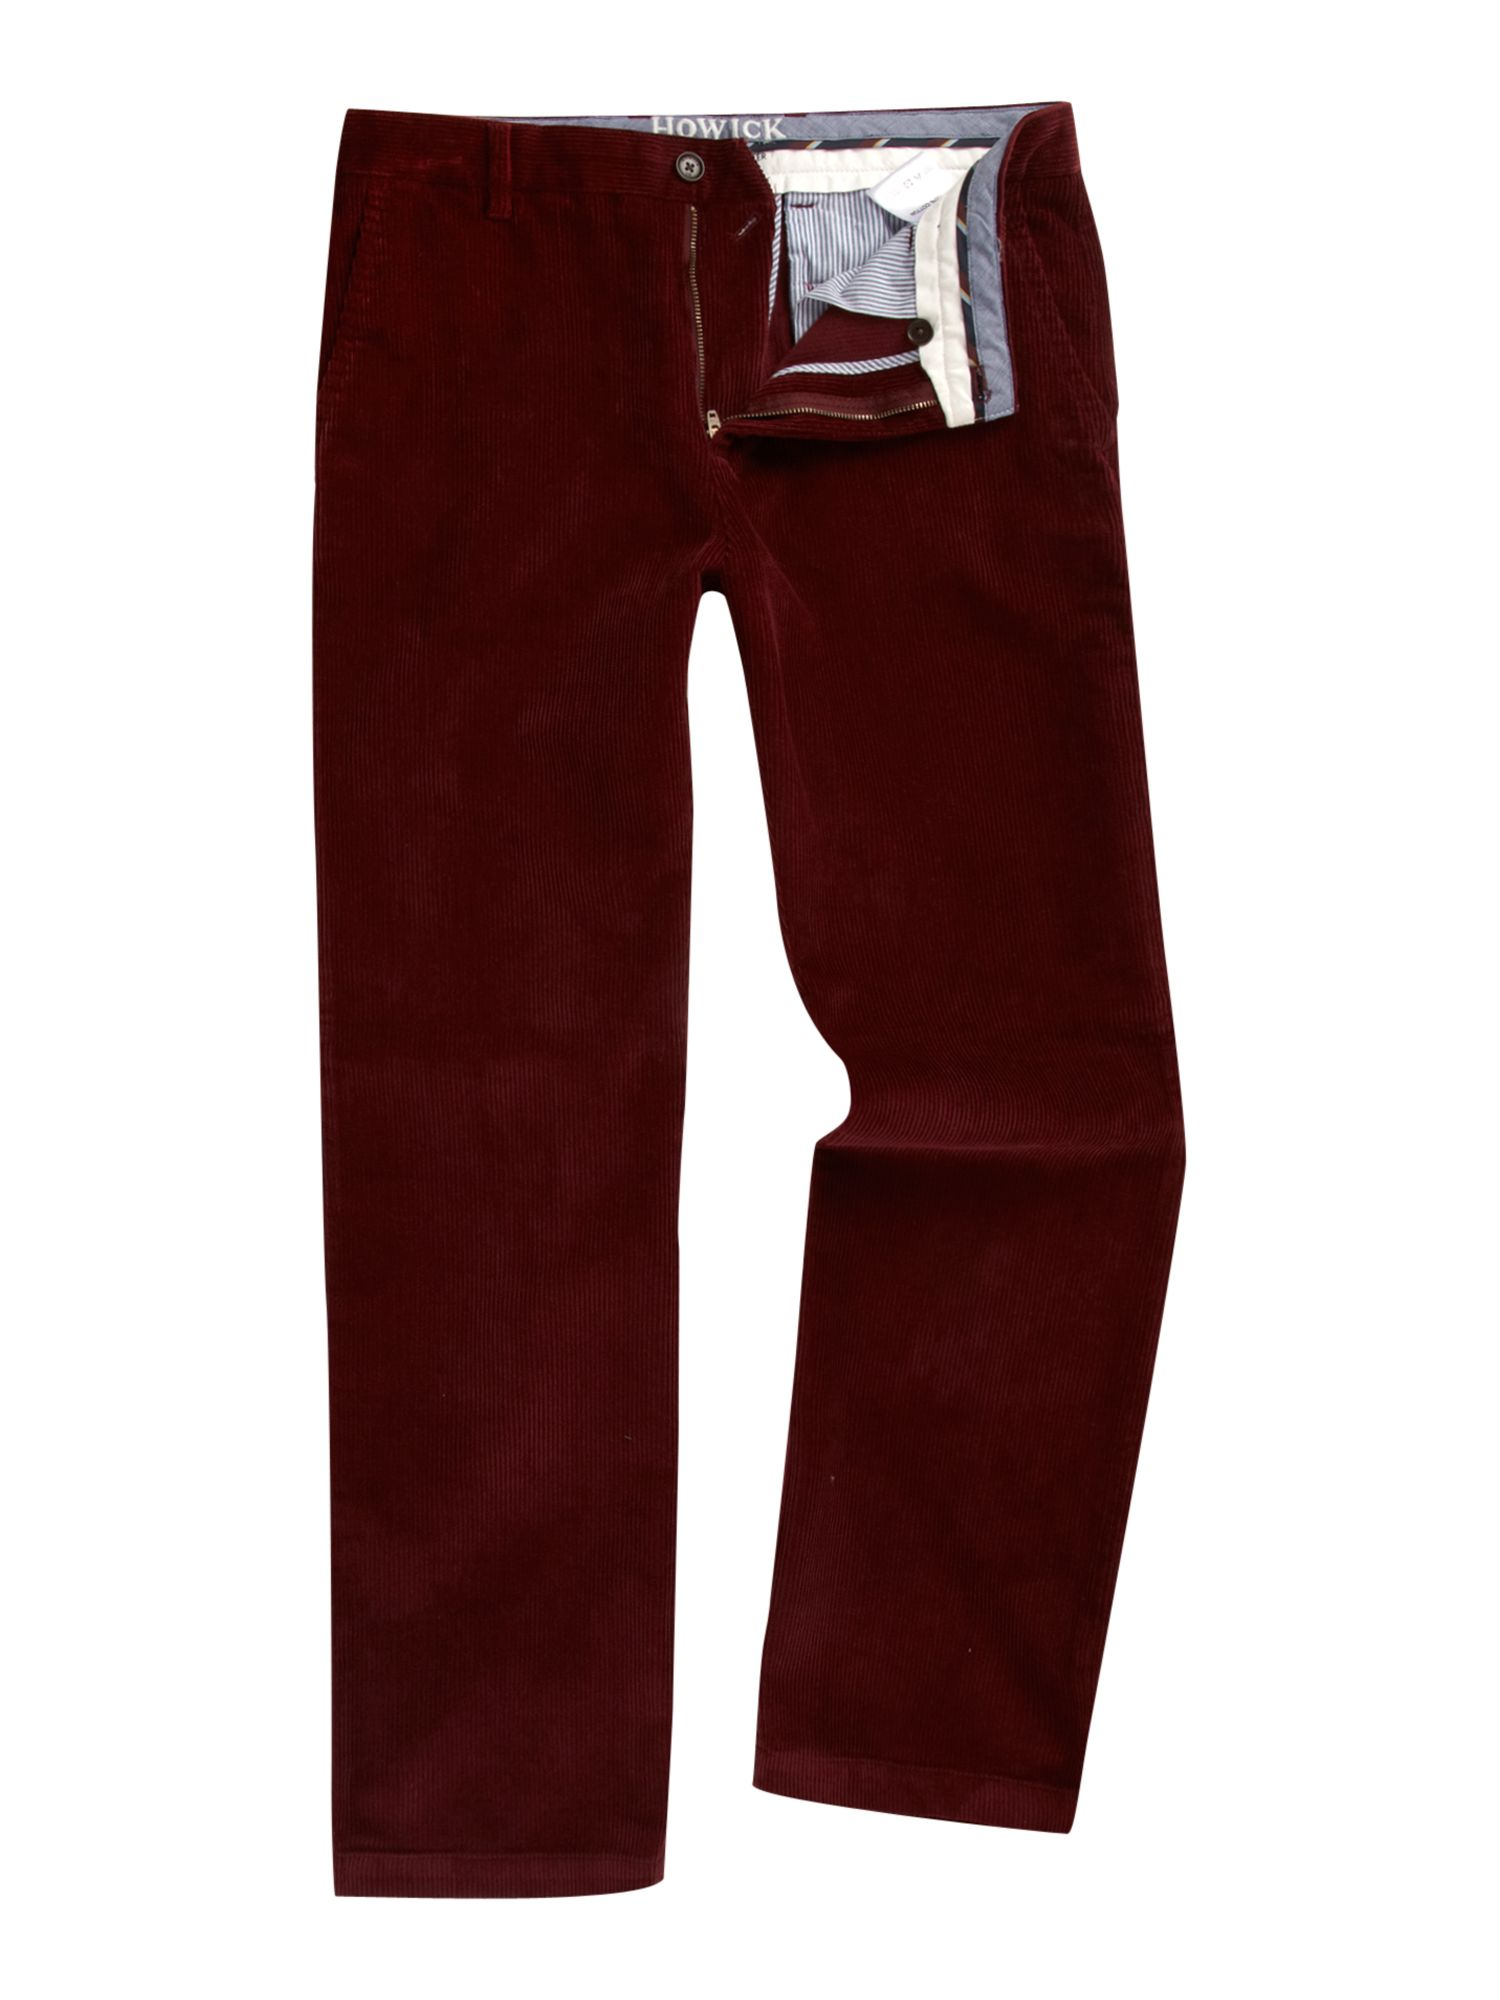 Spencer corduroy trouser